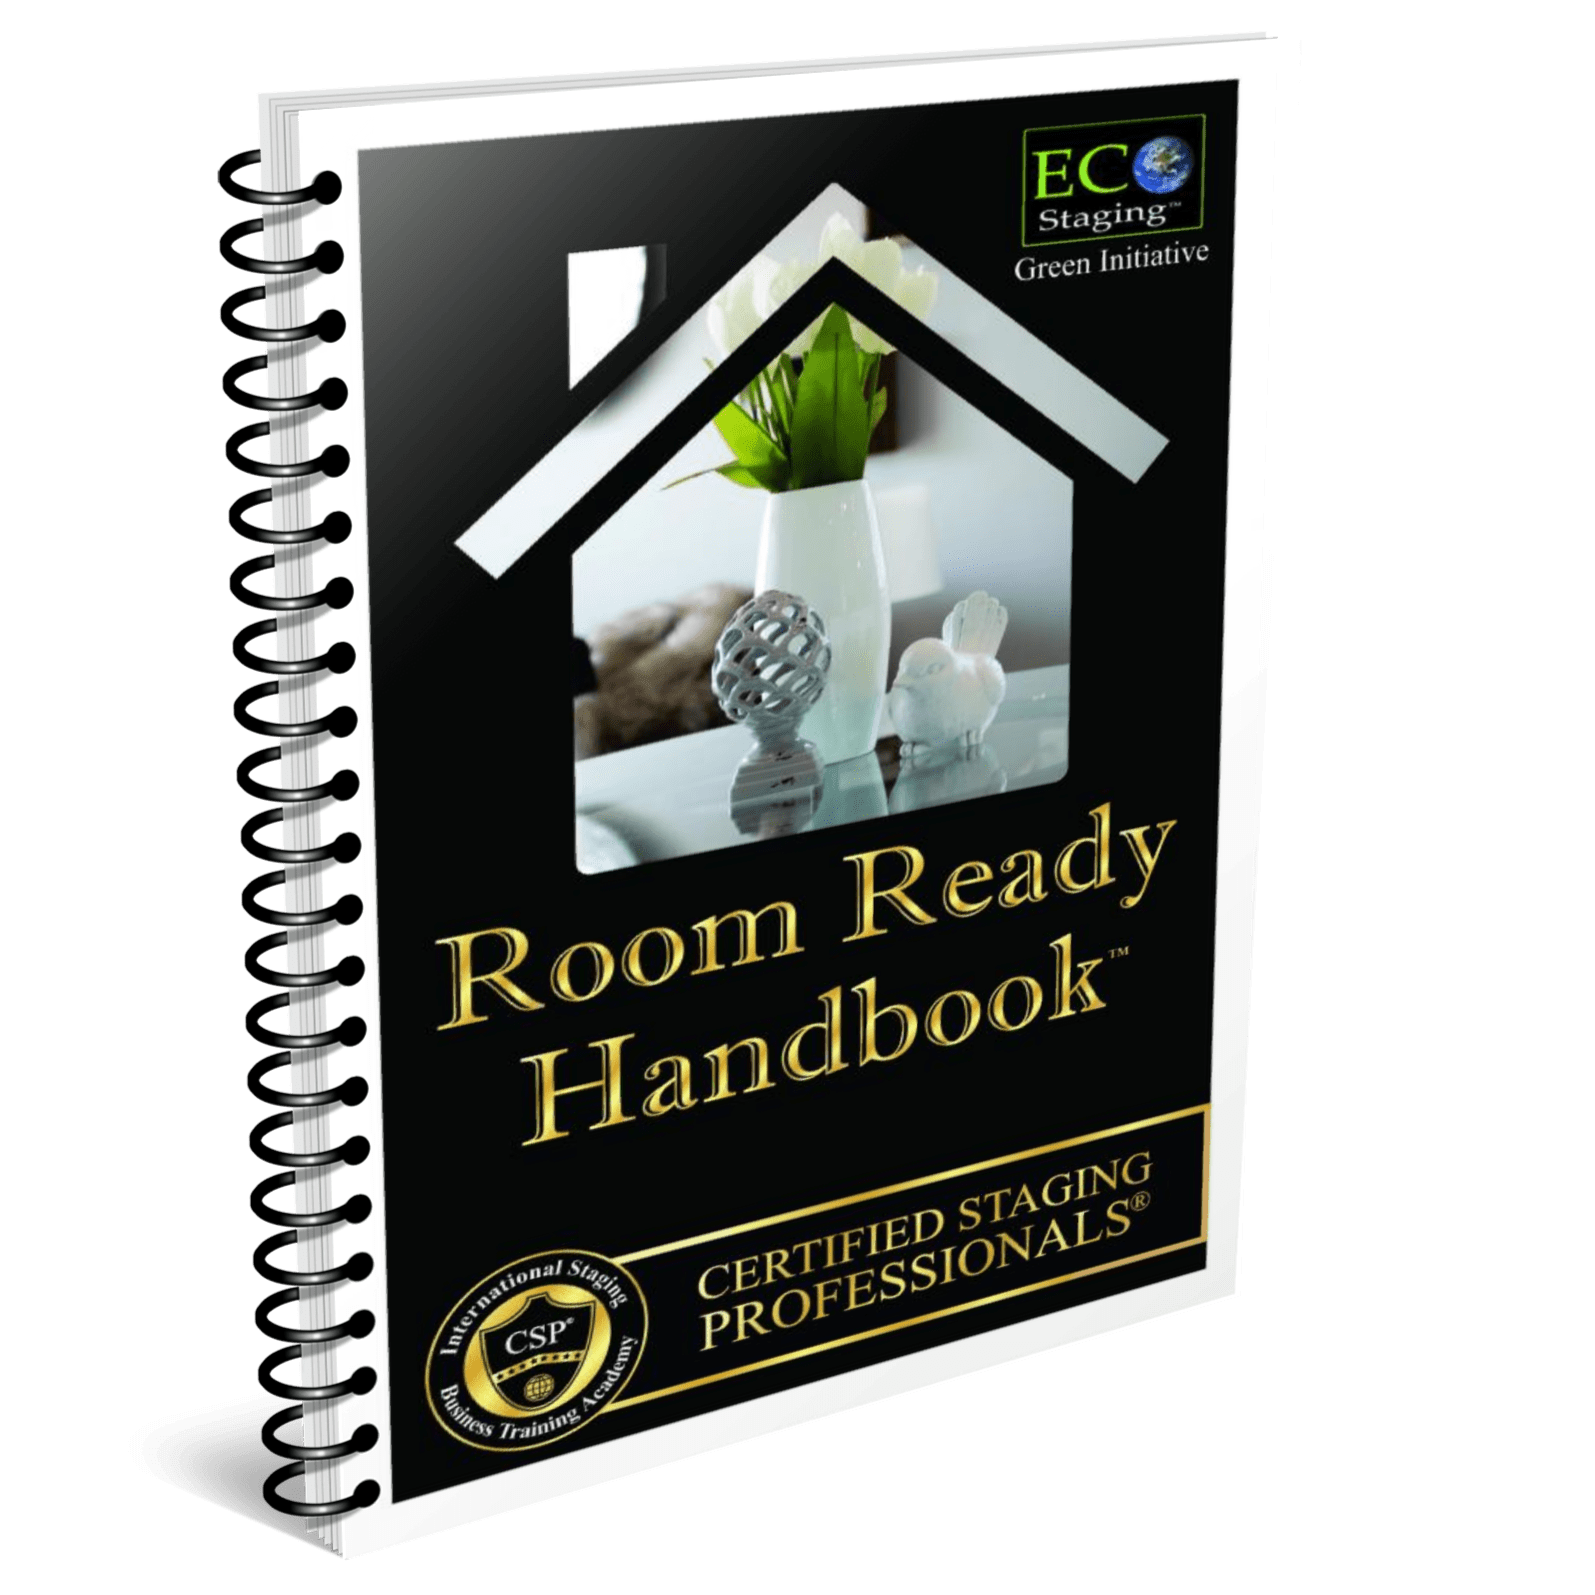 Room Ready Handbook - Preparing to Sell Your Home